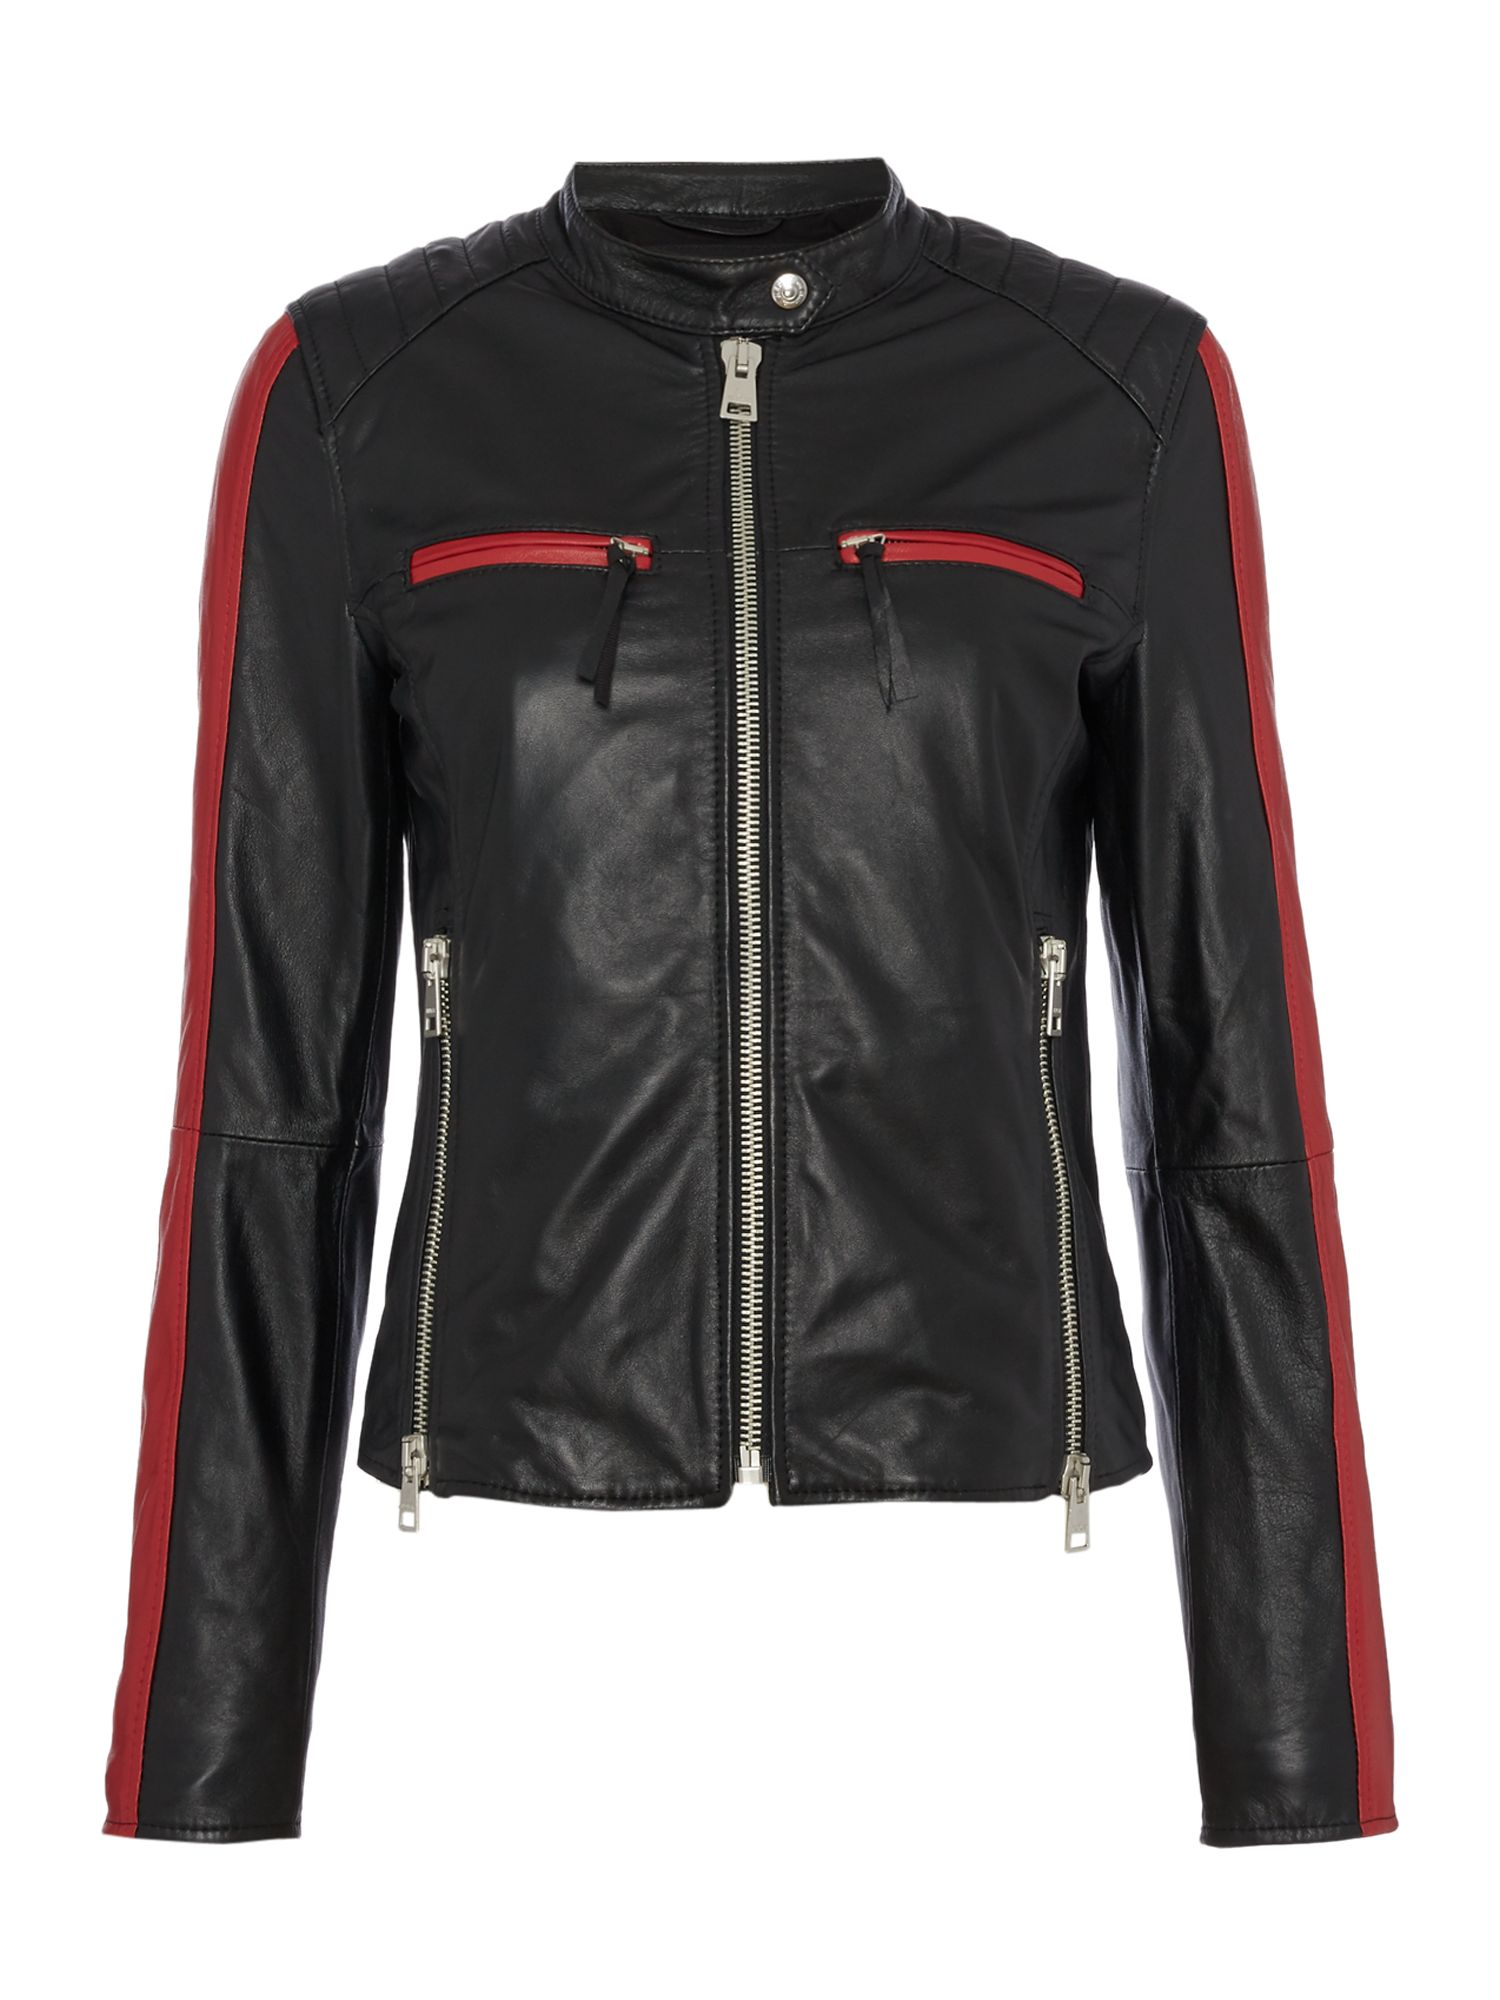 Replay Leather Jacket With Contrast Details, Black